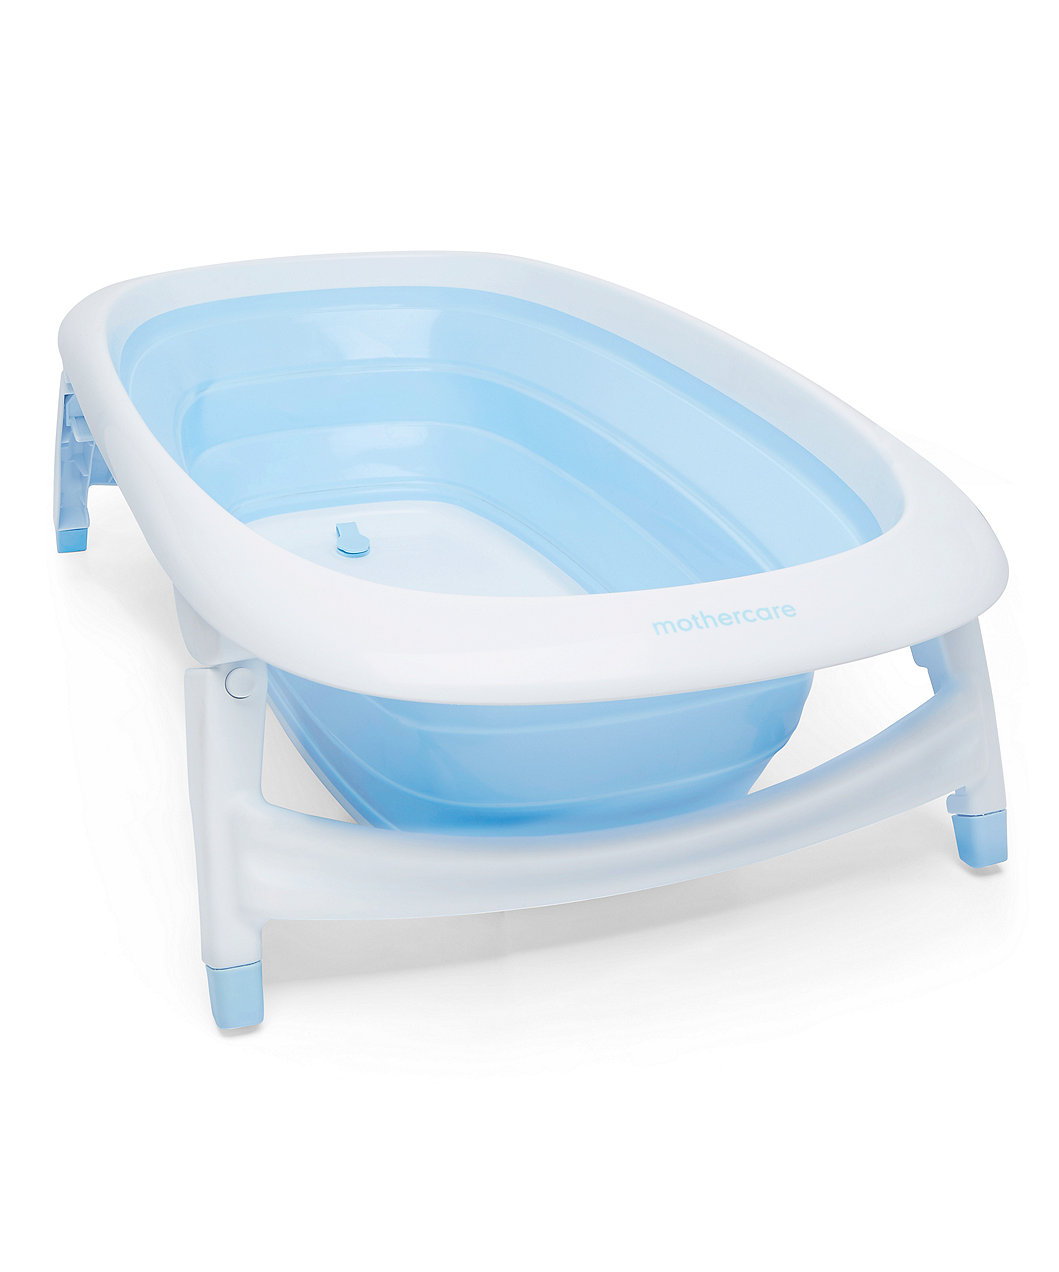 Foldable Baby Bath Blue | Mothercare